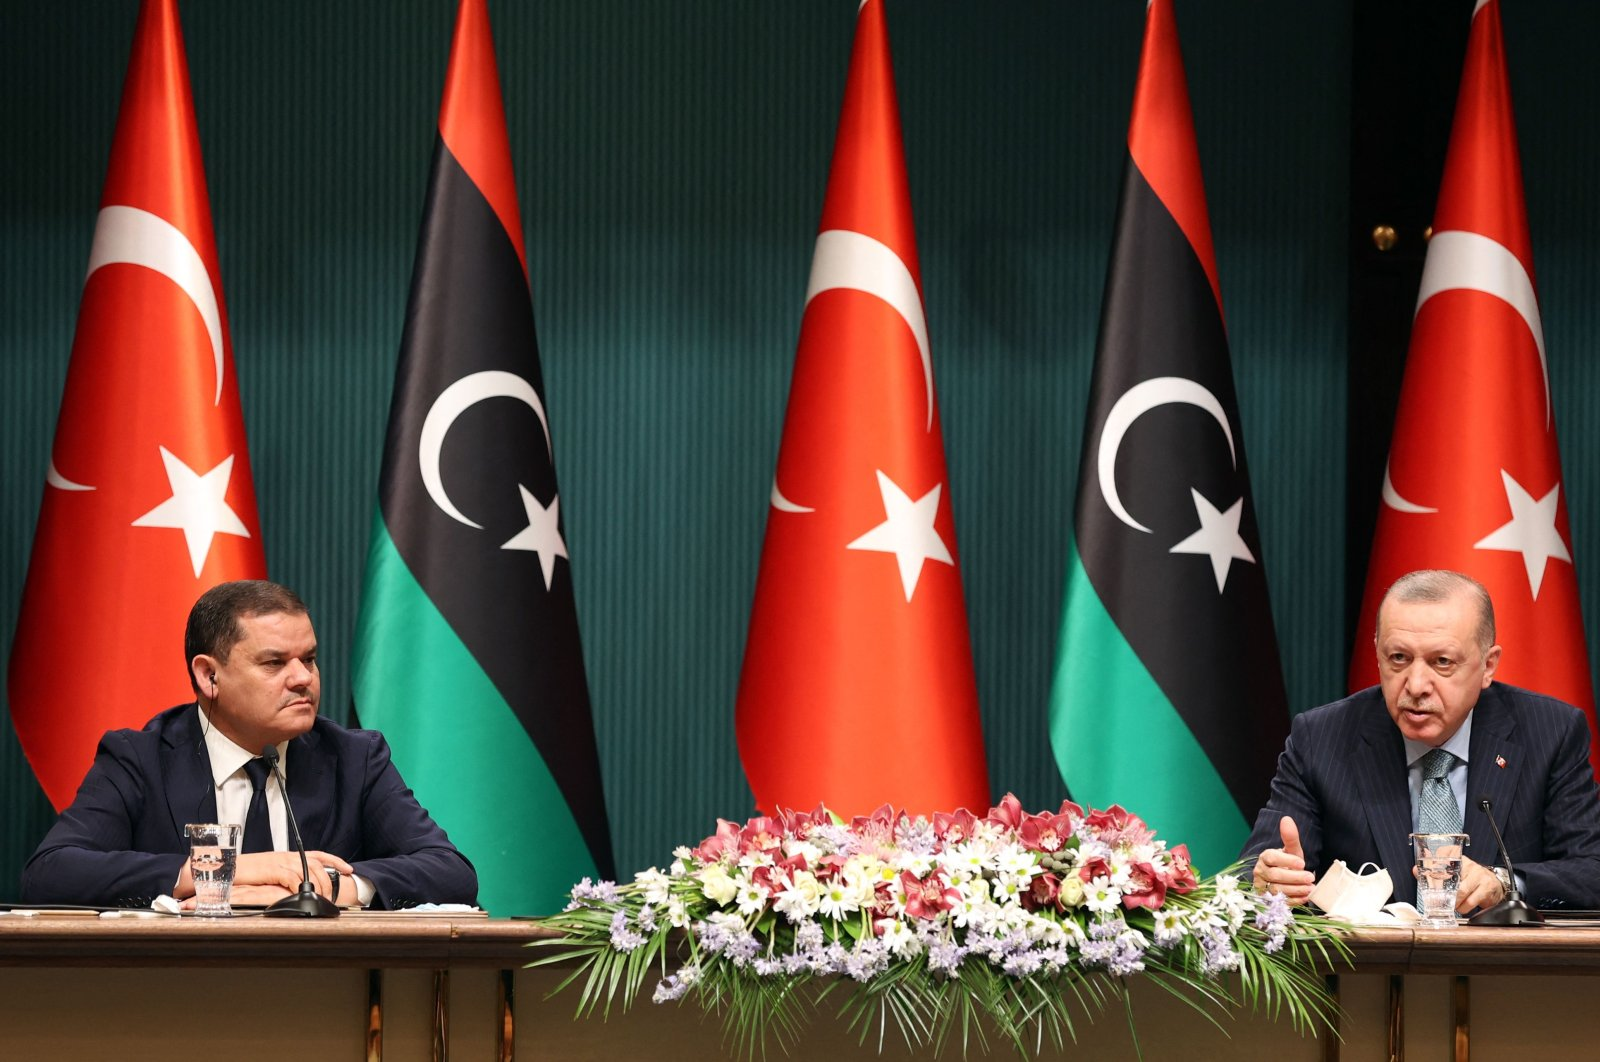 Turkish President Recep Tayyip Erdoğan (R) and Libya's interim Prime Minister Abdul Hamid Dbeibah attend a signing ceremony after their meeting at the Presidential Complex in Ankara, Turkey, April 12, 2021. (AFP Photo)